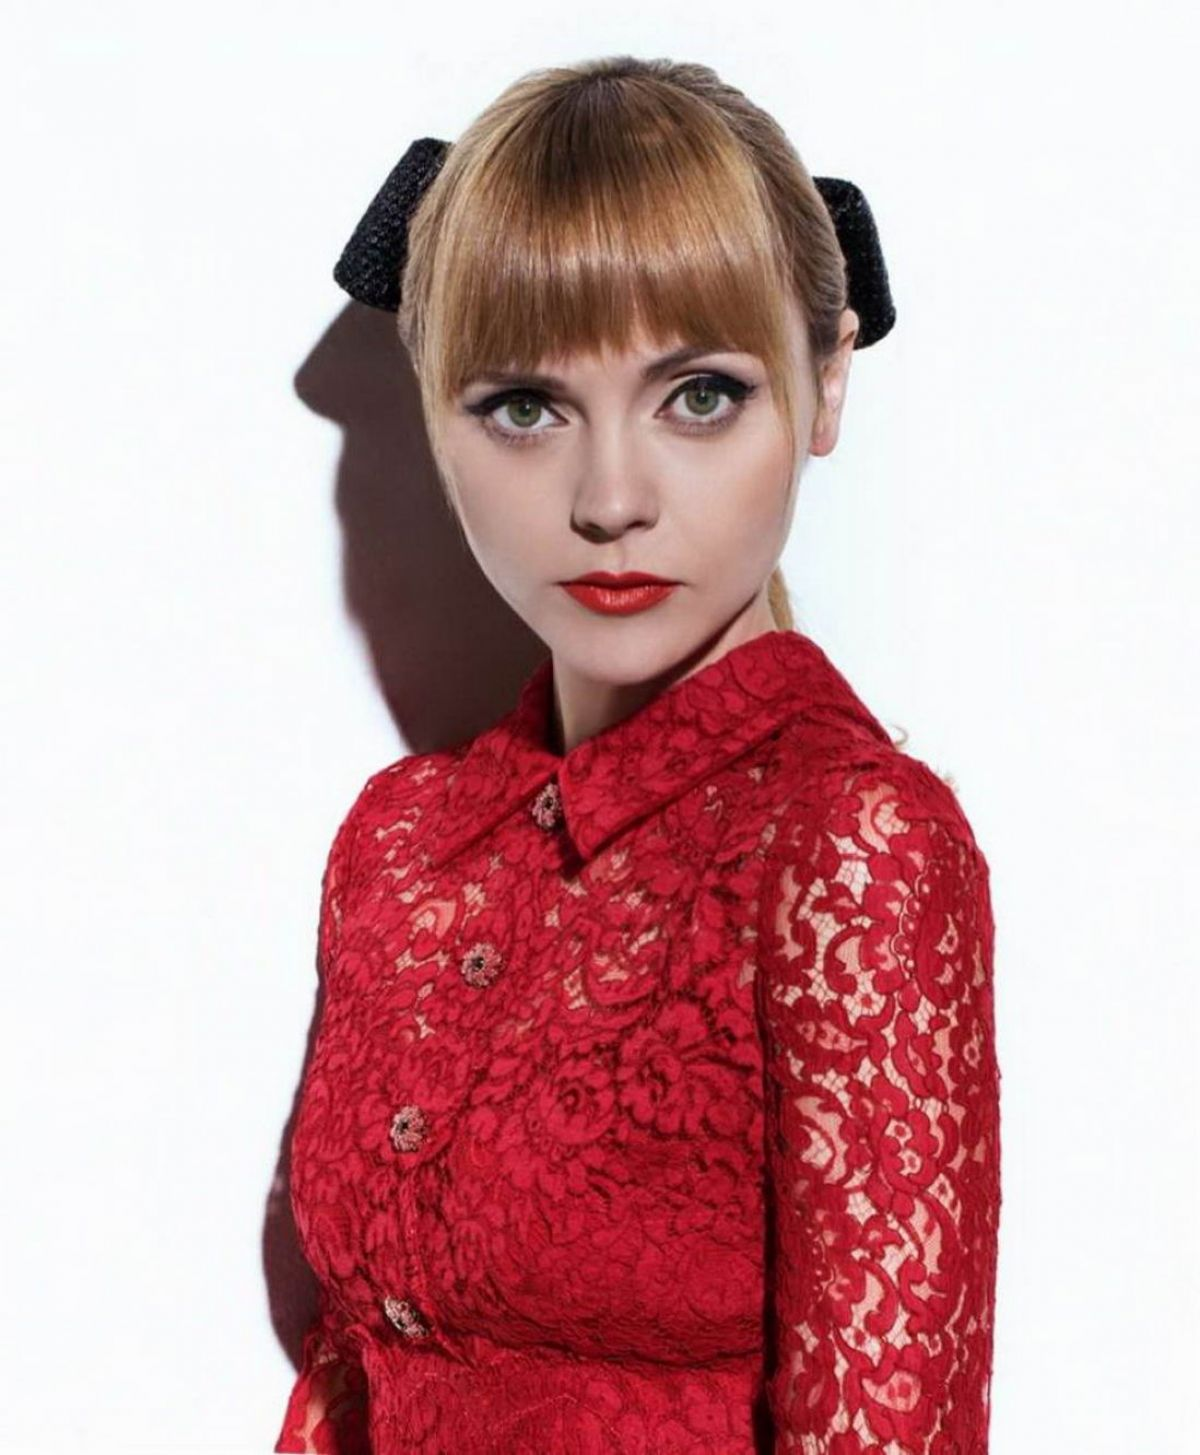 Christina Ricci In S Moda Magazine February 2016 - Celebzz - Celebzz